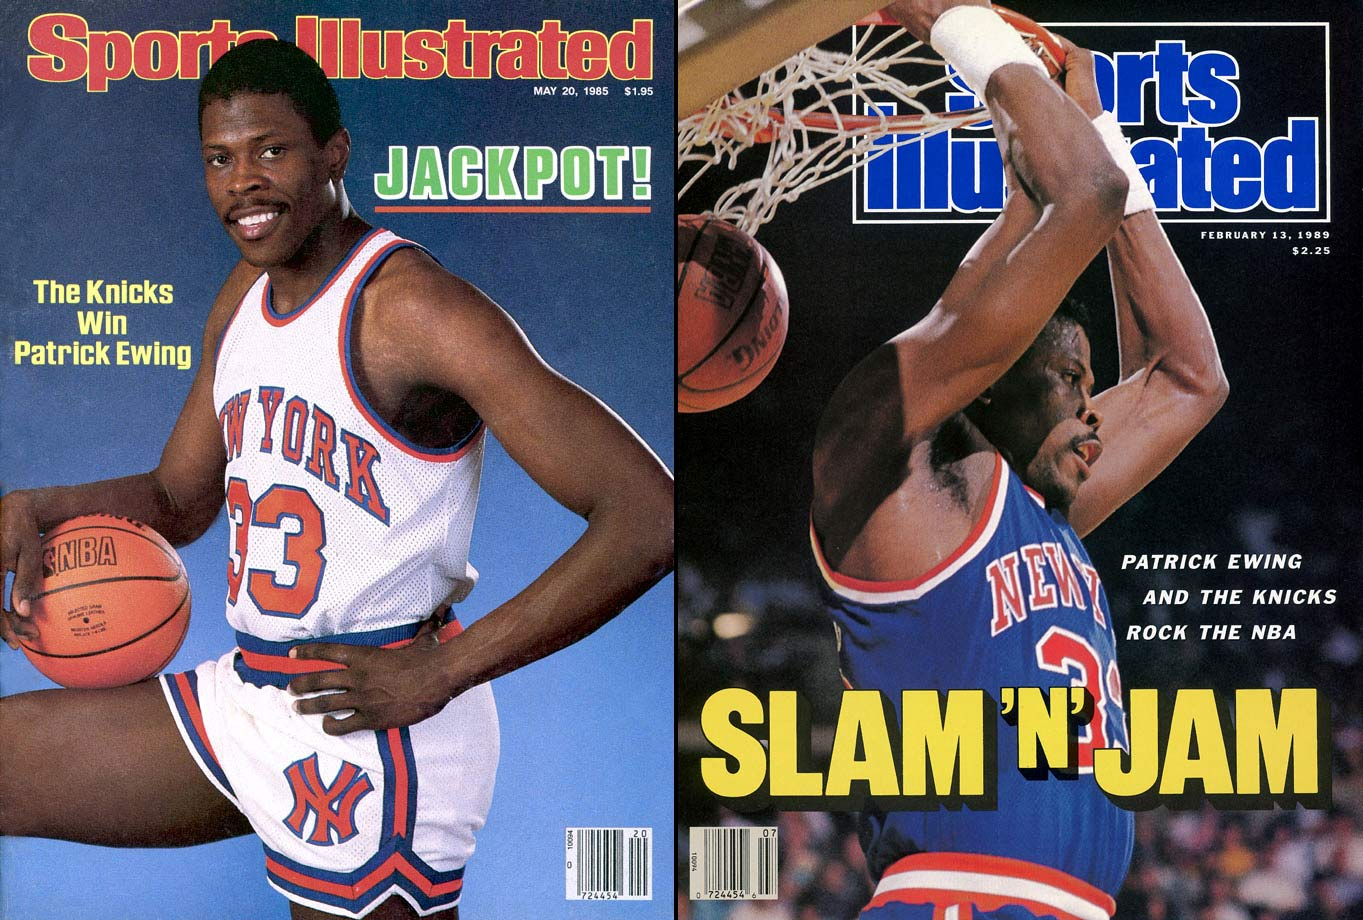 The 1984-85 College Player of the Year and 1985-86 NBA Rookie of the Year, Patrick Ewing was the No. 1 overall pick of the 1985 NBA Draft. The Hall of Fame center made 11-time All Star games through 15 seasons.